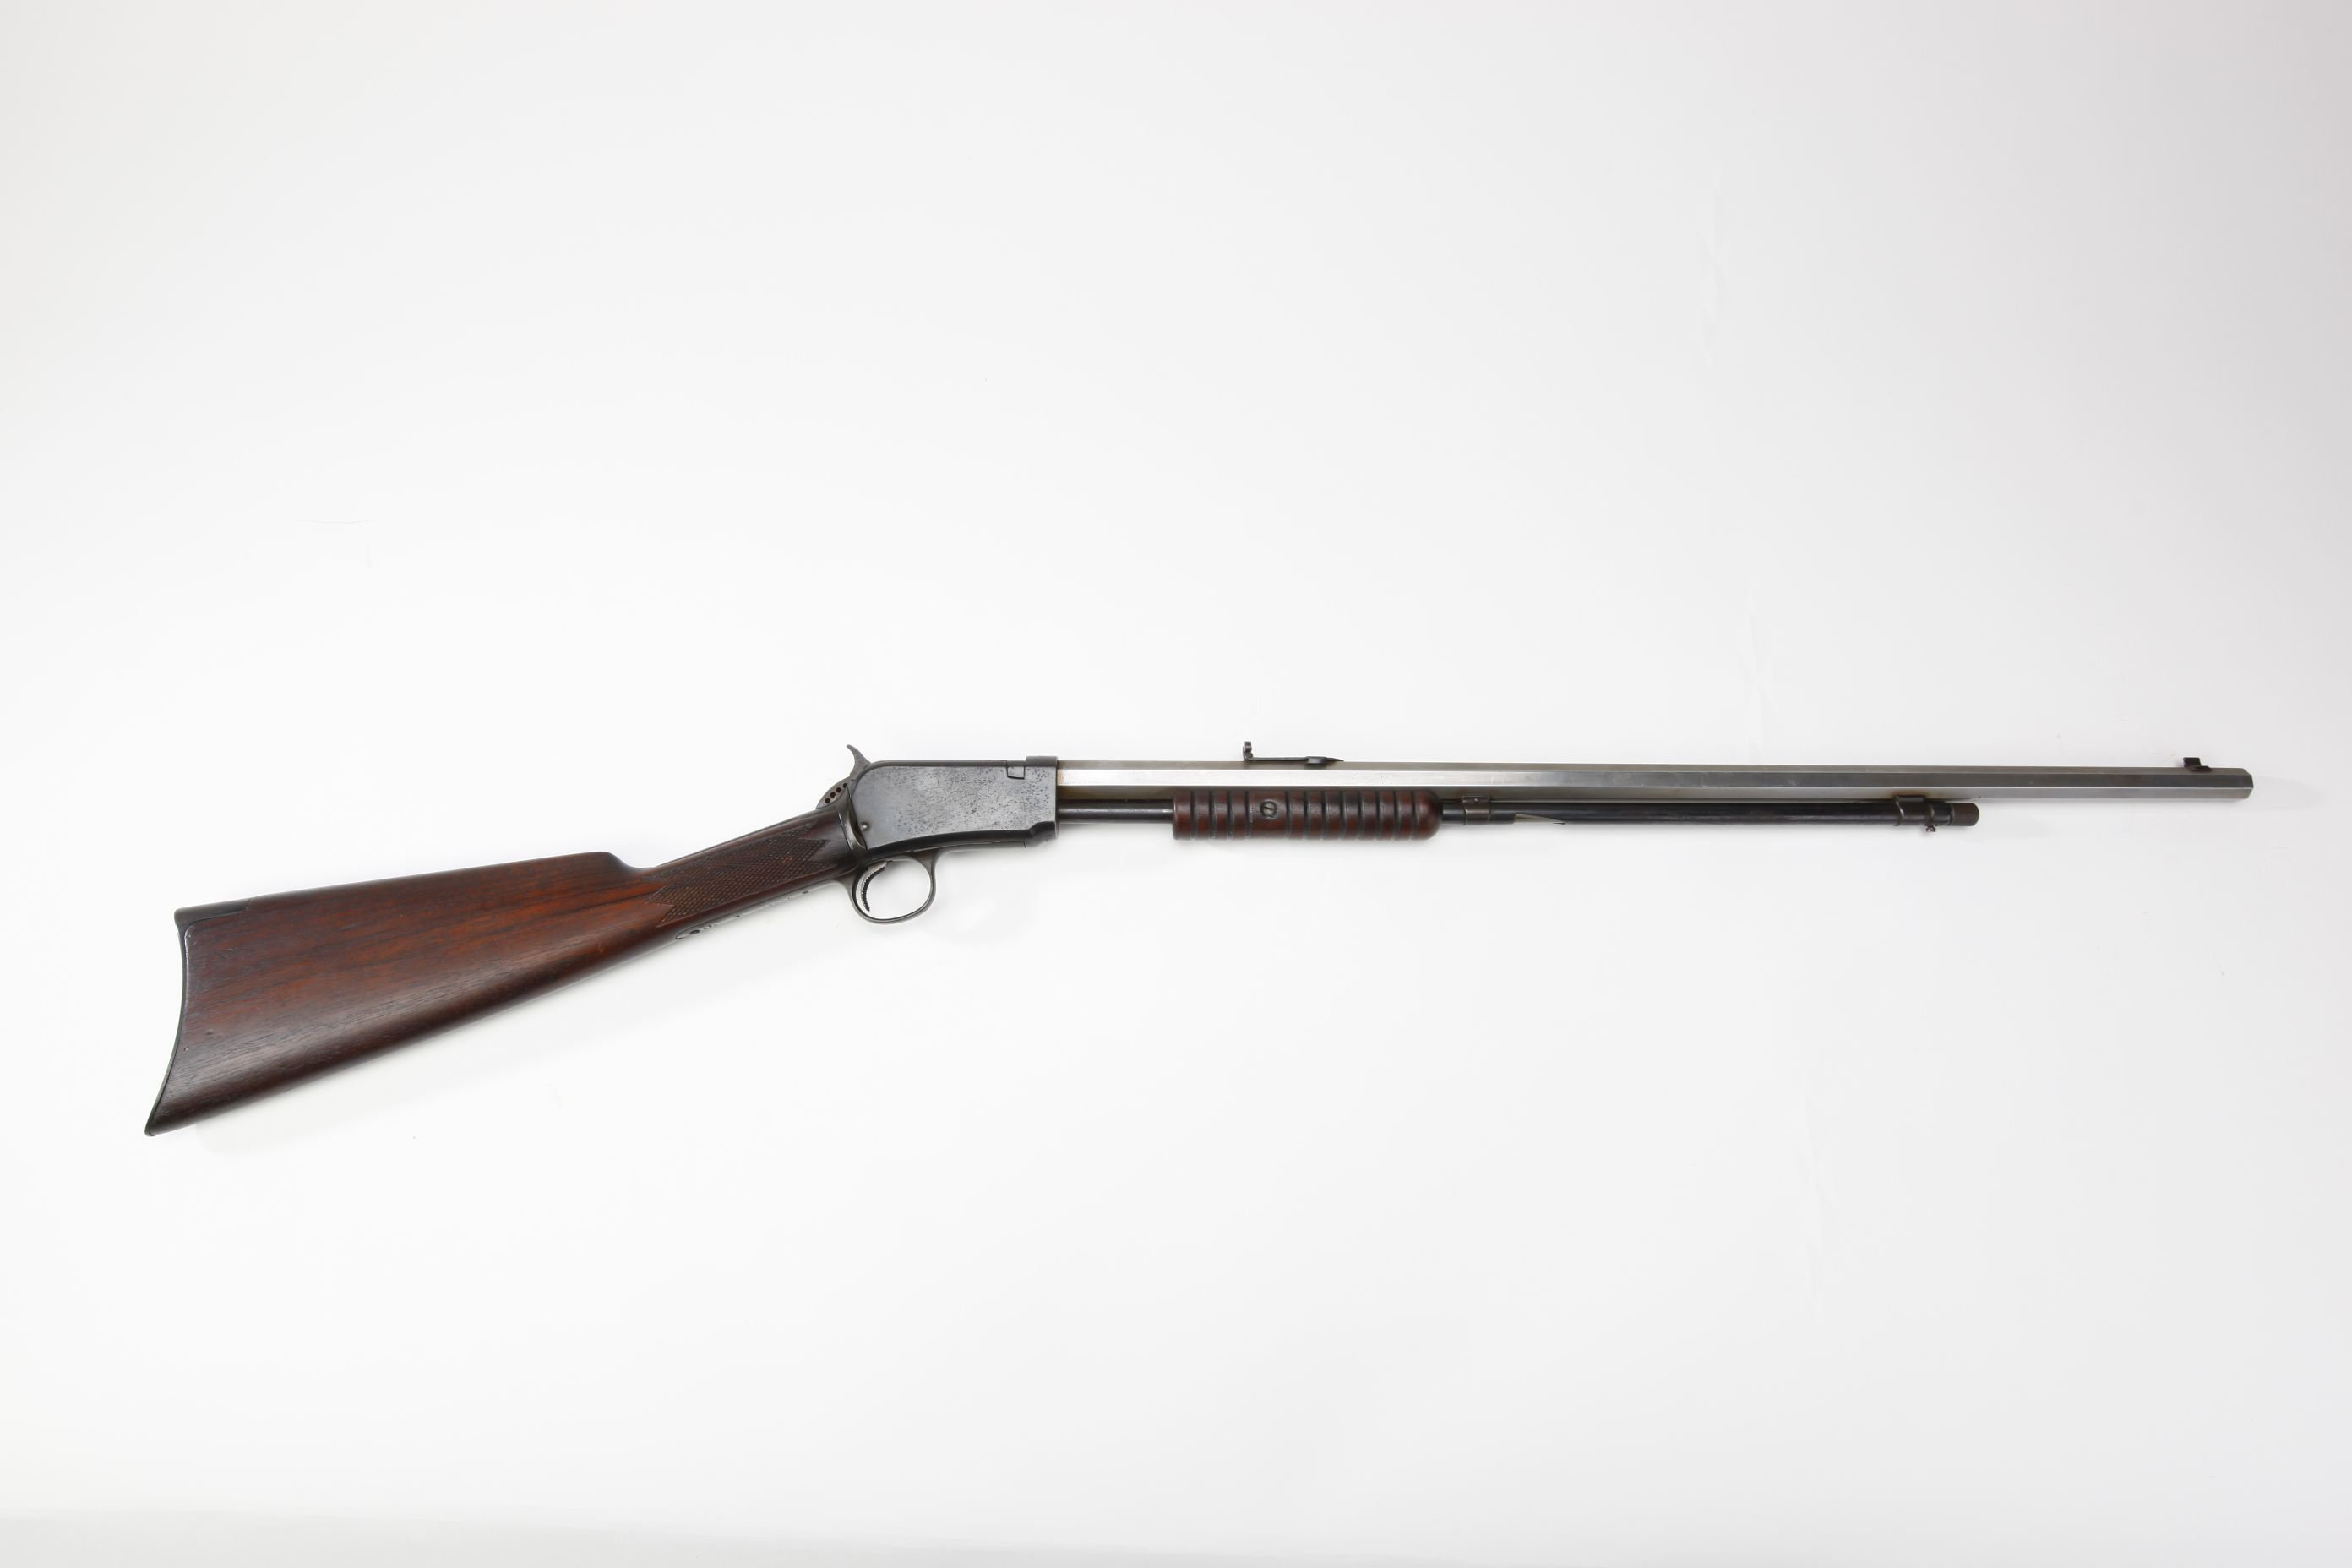 Winchester Model 1890 Slide Action Rifle (7)